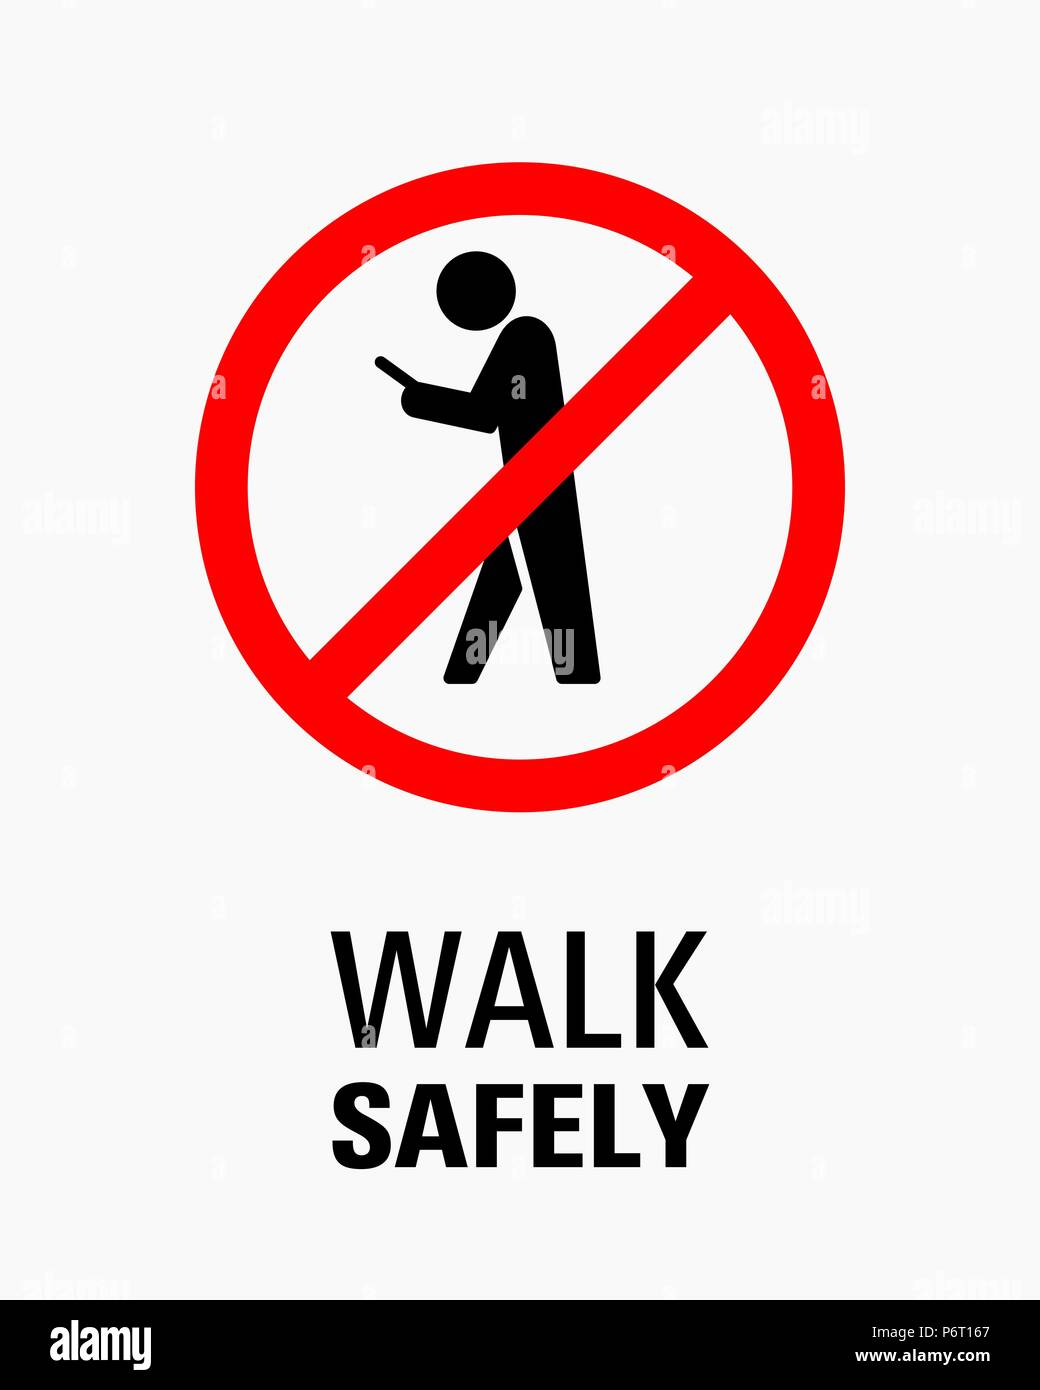 Using smartphone while walking sign vector illustration. - Stock Vector